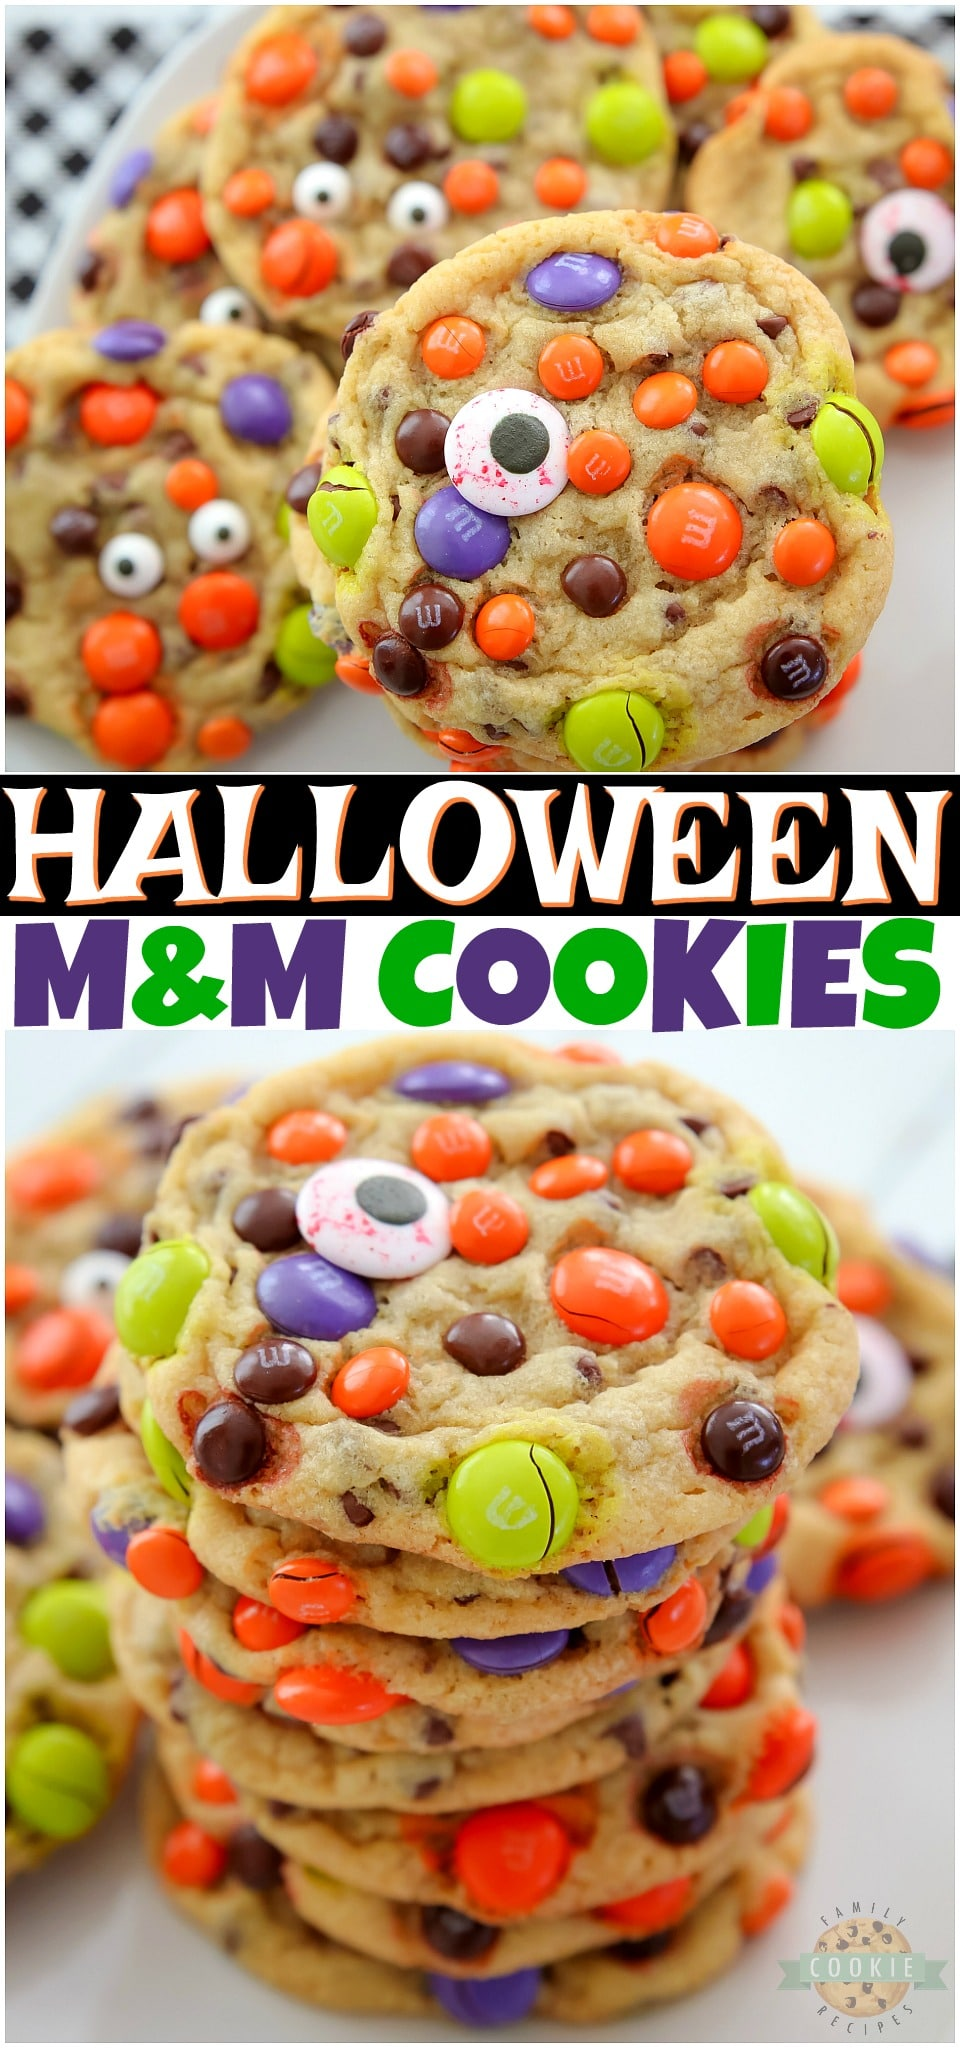 Perfect M&M HALLOWEEN Cookies made with butter, sugars, pudding mix & festive M&M's candies! Fun & festive Halloween Cookie recipe with candy that everyone loves! #cookies #M&M #Halloween #cookierecipe #HalloweenCookies #easyrecipe from FAMILY COOKIE RECIPES via @familycookierecipes